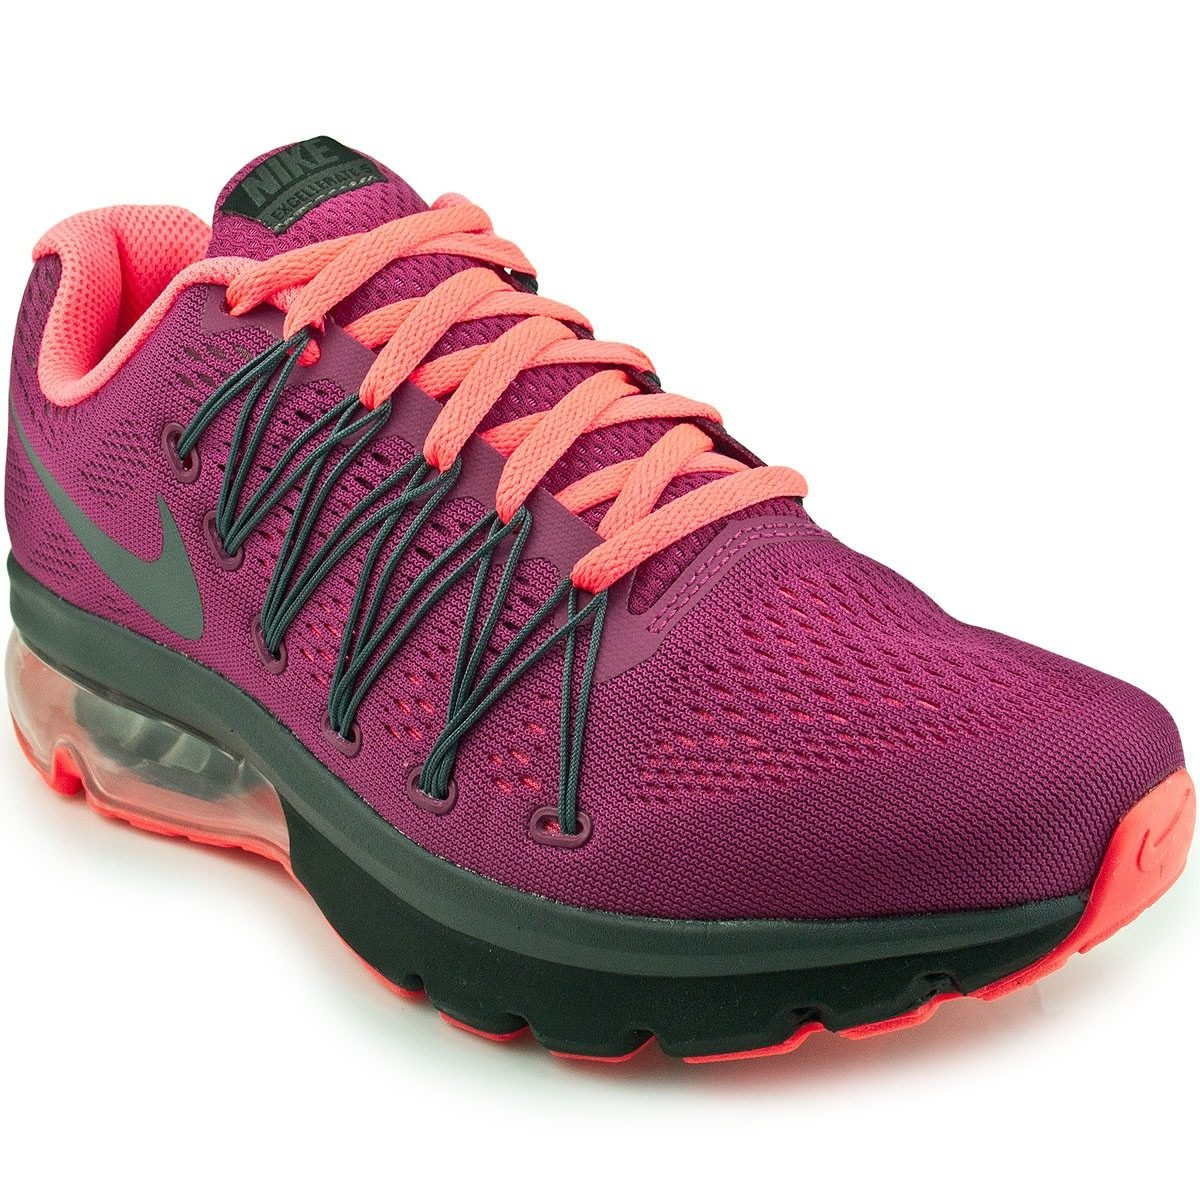 b2eba0200a049 zapatillas nike air max excellerate 5 damas 852693-601. Cargando zoom.